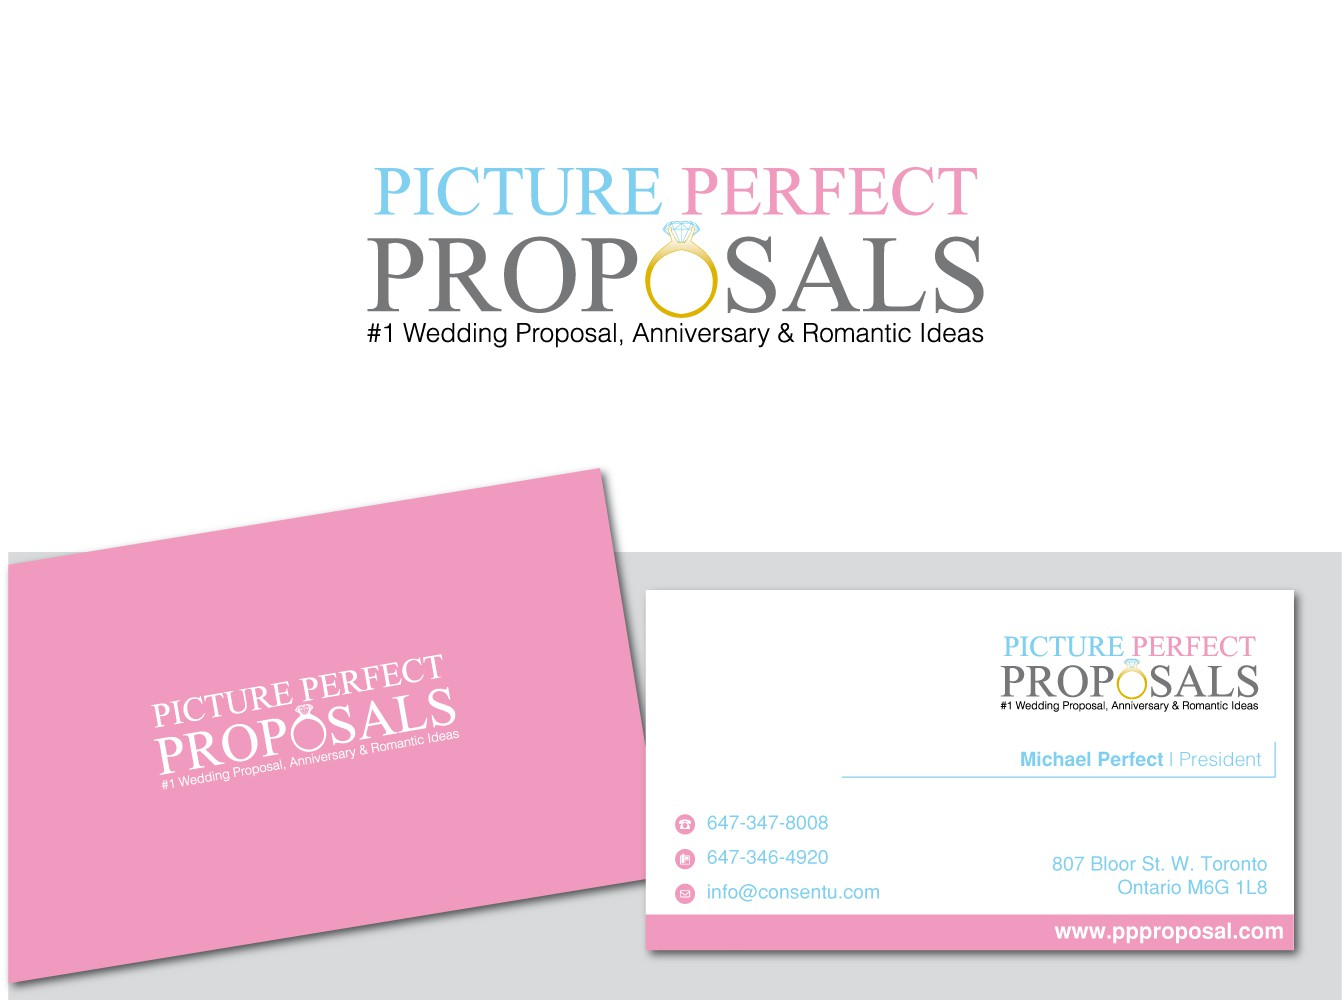 logo for Picture Perfect Proposals